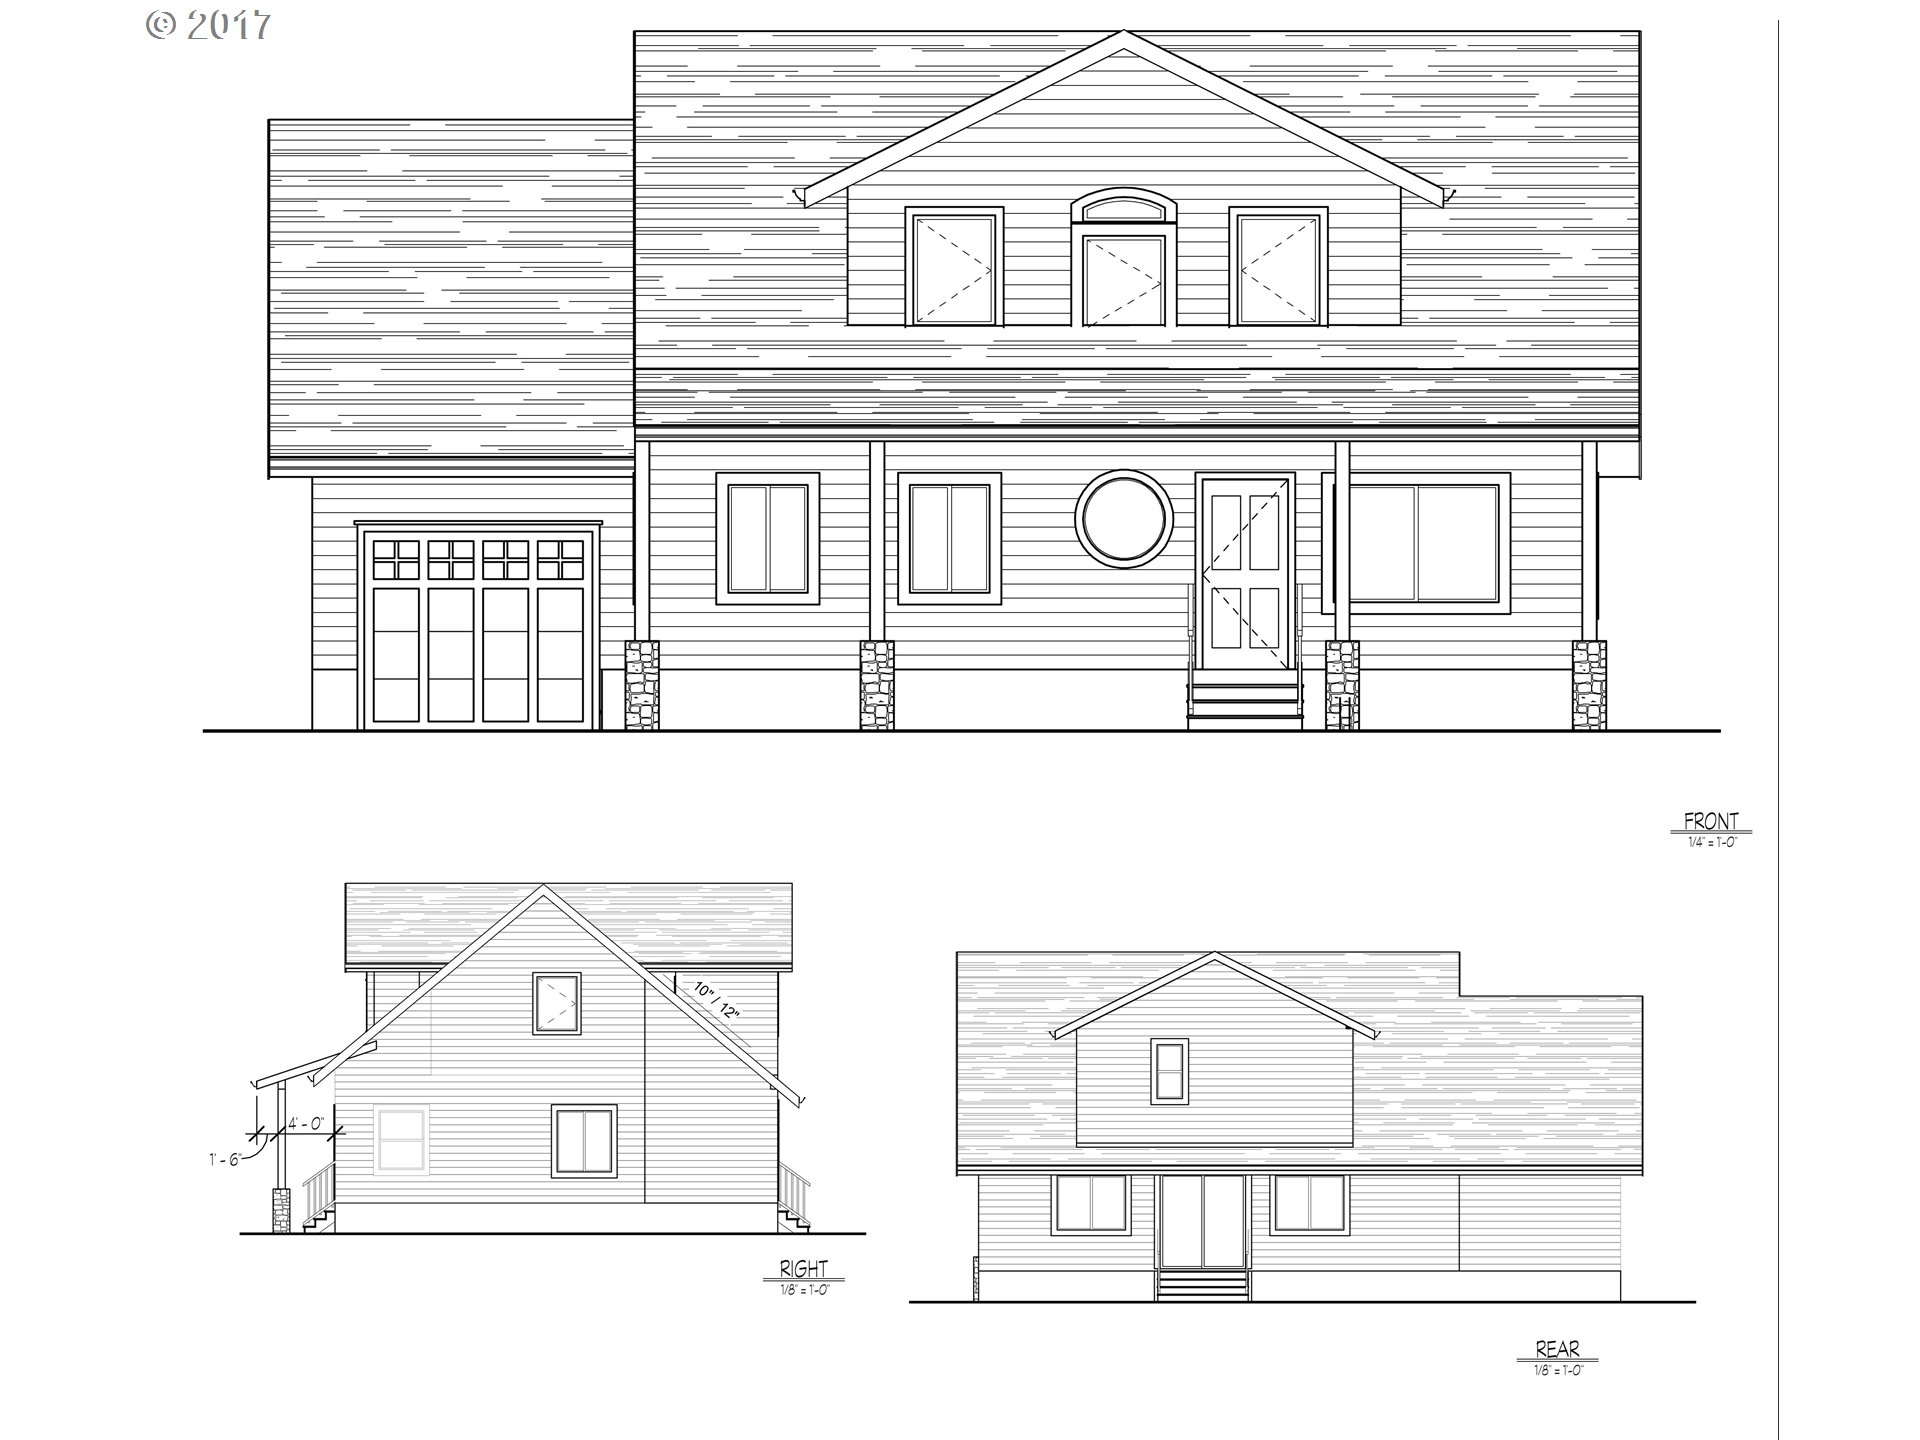 Great opportunity to build in Prime location! Images are of plans currently submitted to the County. The existing structure is gutted and ready for remodel. Options for the property include: Expanding existing home, Keep house & draw up flag lot, or Develop up to 4 lots. Sale includes property and plans. Amazing location, near Nike / Reser Foods / Walking distance from Max Line. Across the street from Tualatin Hills Nature Park